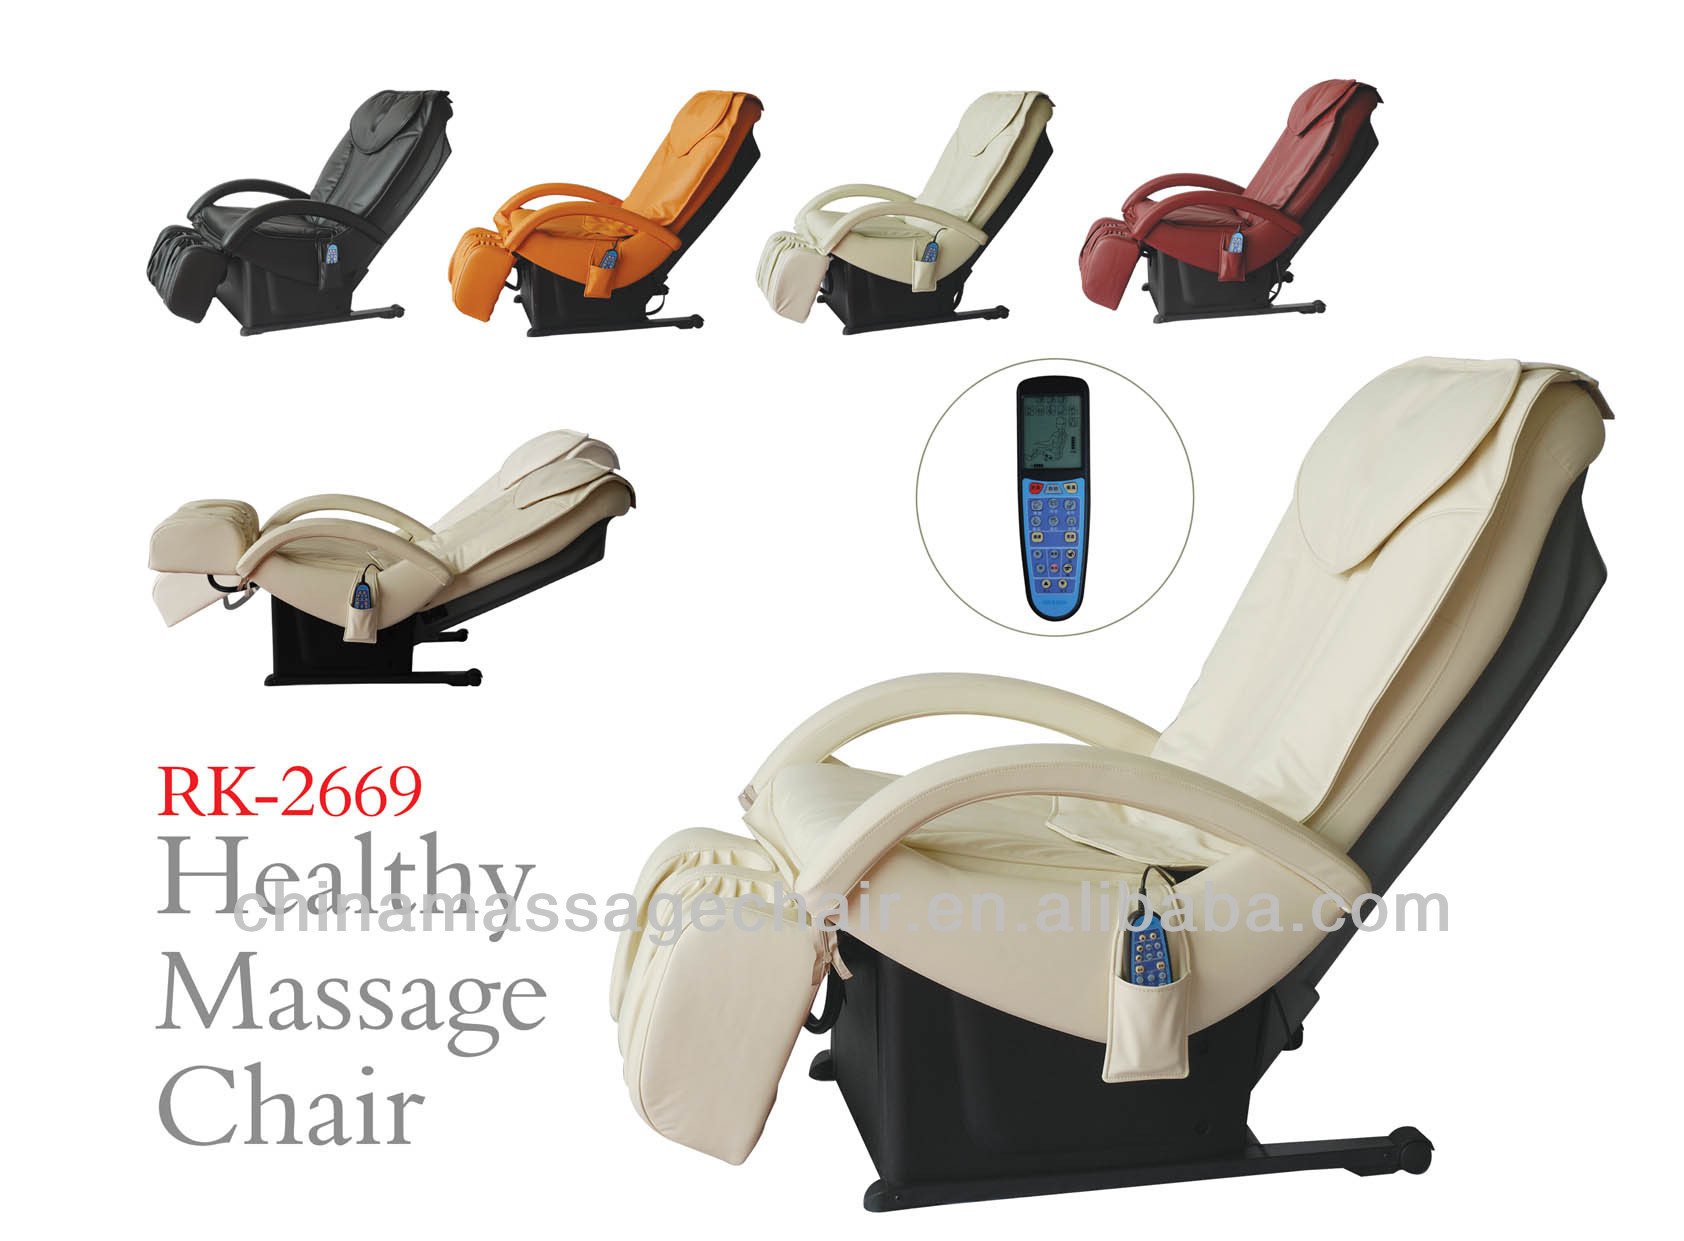 tek Rk2669 Cheap Relax Massage Chair Buy Massage